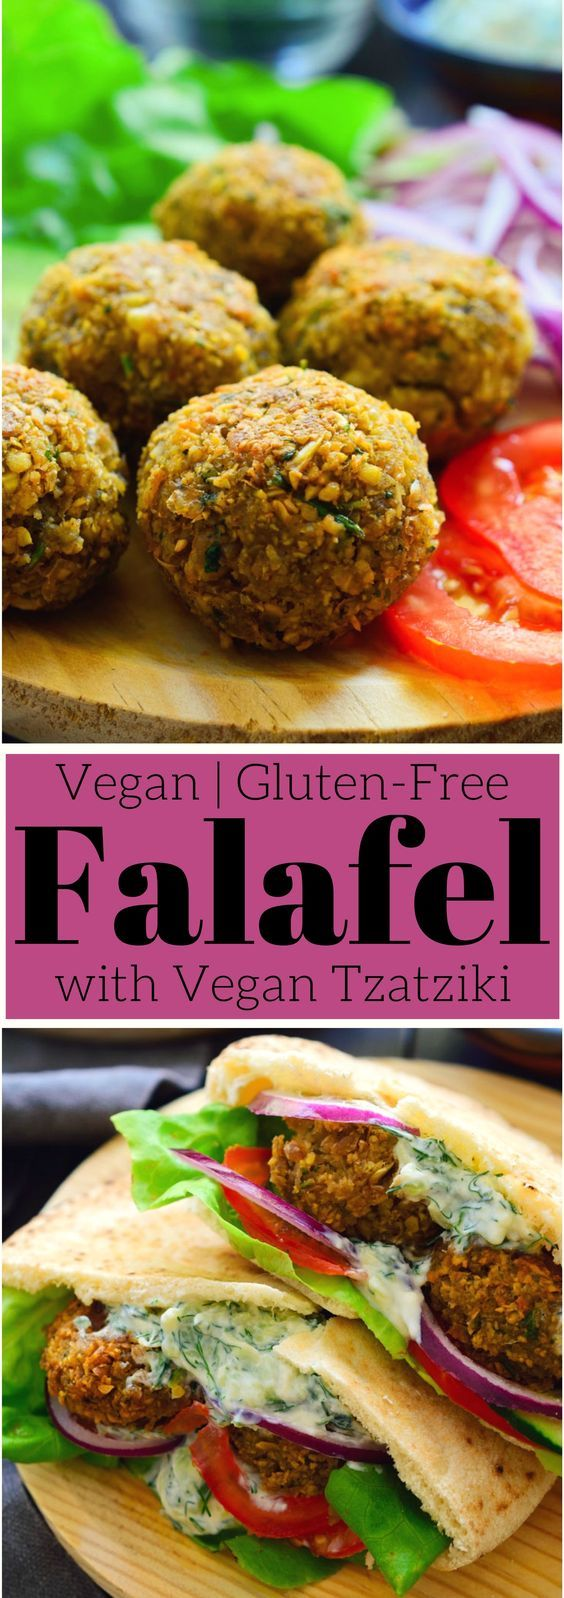 This easy vegan falafel recipe is the most delicious falafel you'll ever have. Crispy on the outside, fluffy on the inside and spiced with the wonderful flavours of cumin and coriander. These falafel are great on top of a big bowl of veggies or stuffed into a pita sandwich with a big dollop of vegan tzatziki on top.